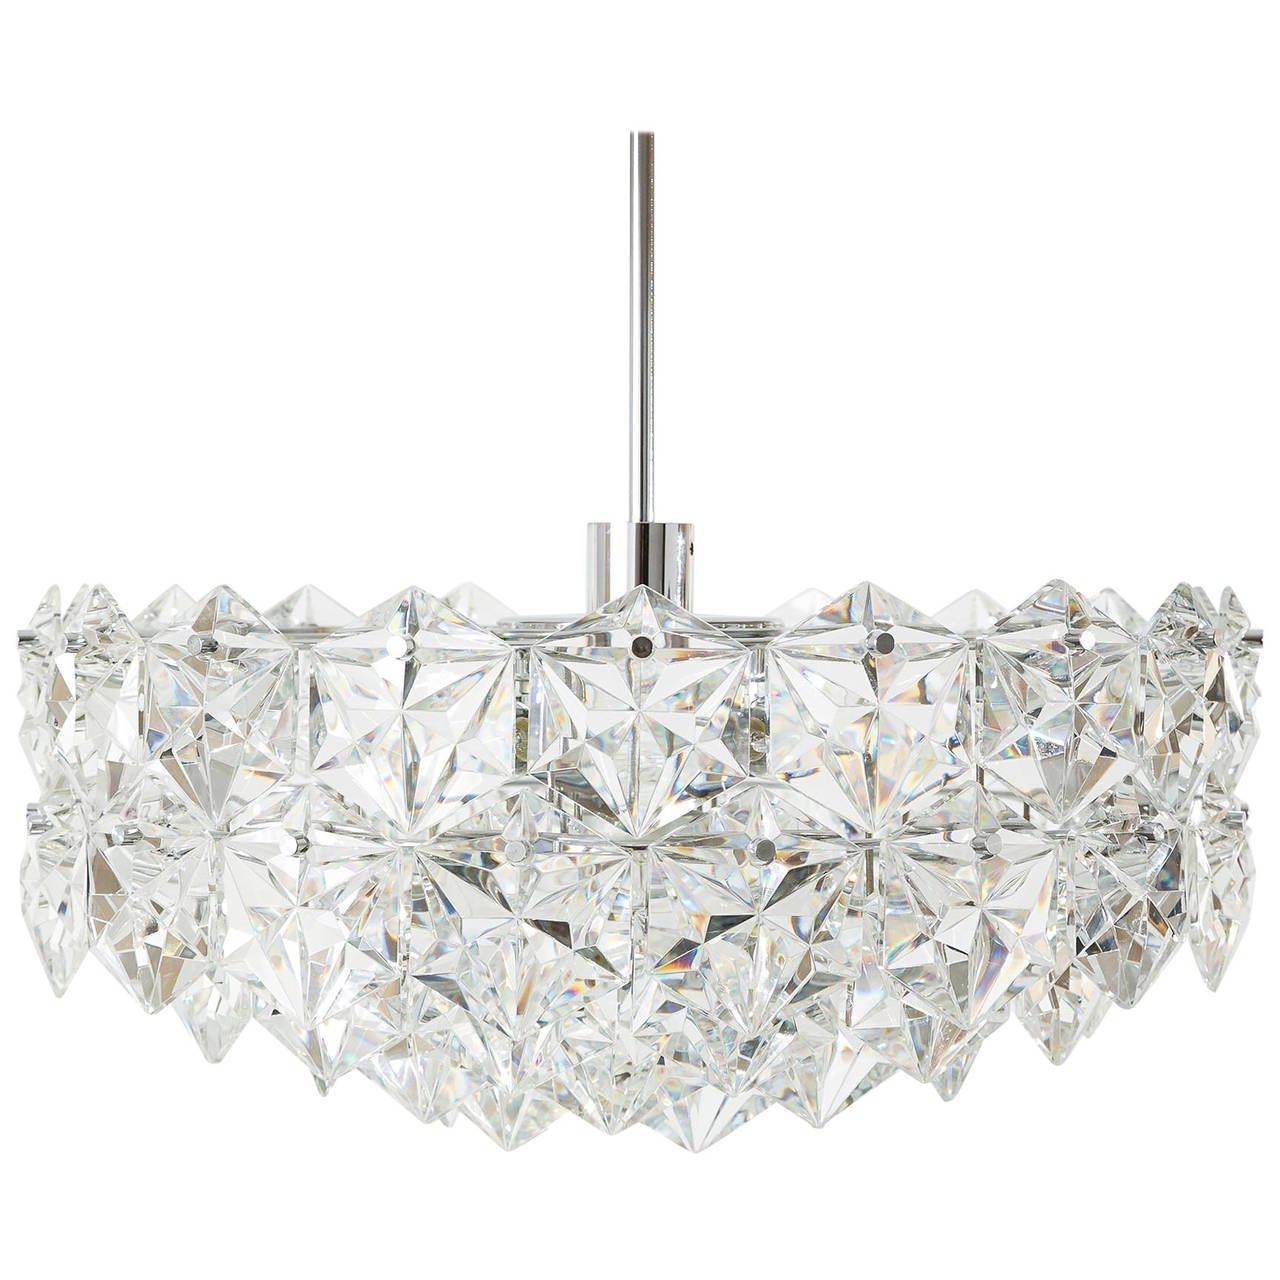 Large Kinkeldey Chandelier Or Flush Mount Light Fixture Crystal Pertaining To Crystal Chrome Chandelier (#10 of 12)